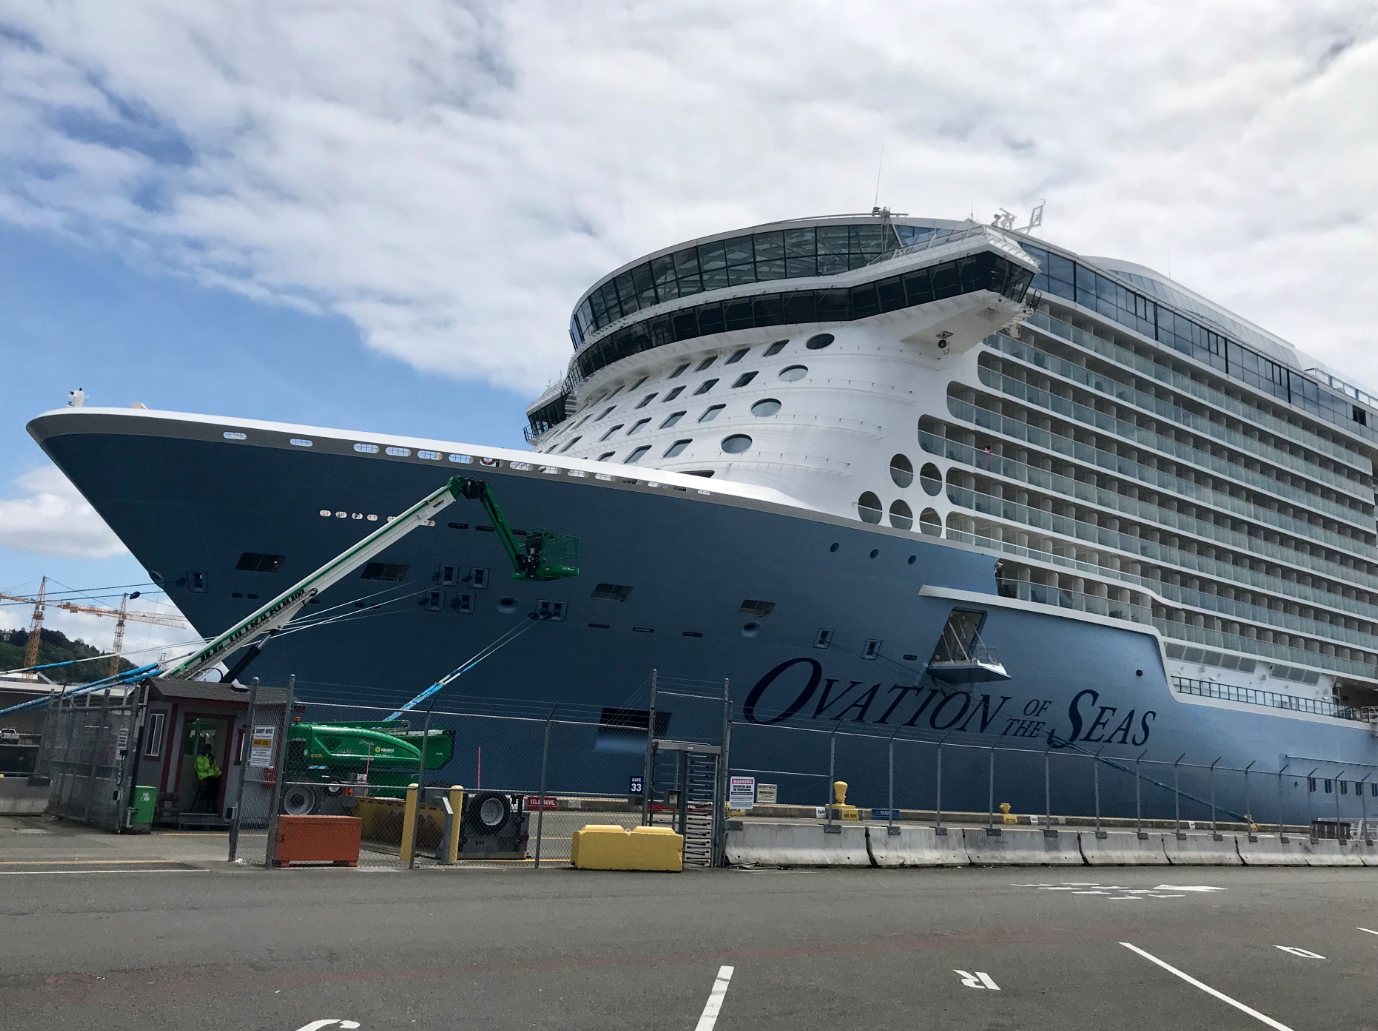 It's the first-ever Alaska season for Ovation of the Seas - a Royal Caribbean cruise ship that's the largest to ever be homeported on the West Coast! The ship is 136 feet wide, 1,138 feet long, and cruises at a speed of 22 knots. With 18 decks, 16 guest elevators, 20+ dining options, iFly Indoor Skydiving, a robot-operated Bionic Bar, Music Hall, Bumper Cars, and a mini shopping mall - you've likely never been on a ship quite like this one. Taking off once again for a 7-Night Alaska Glacier Cruise on June 14, 2019 - the ship will be back throughout the summer, and again in 2020 for another Alaska season.  (Image: Seattle Refined)